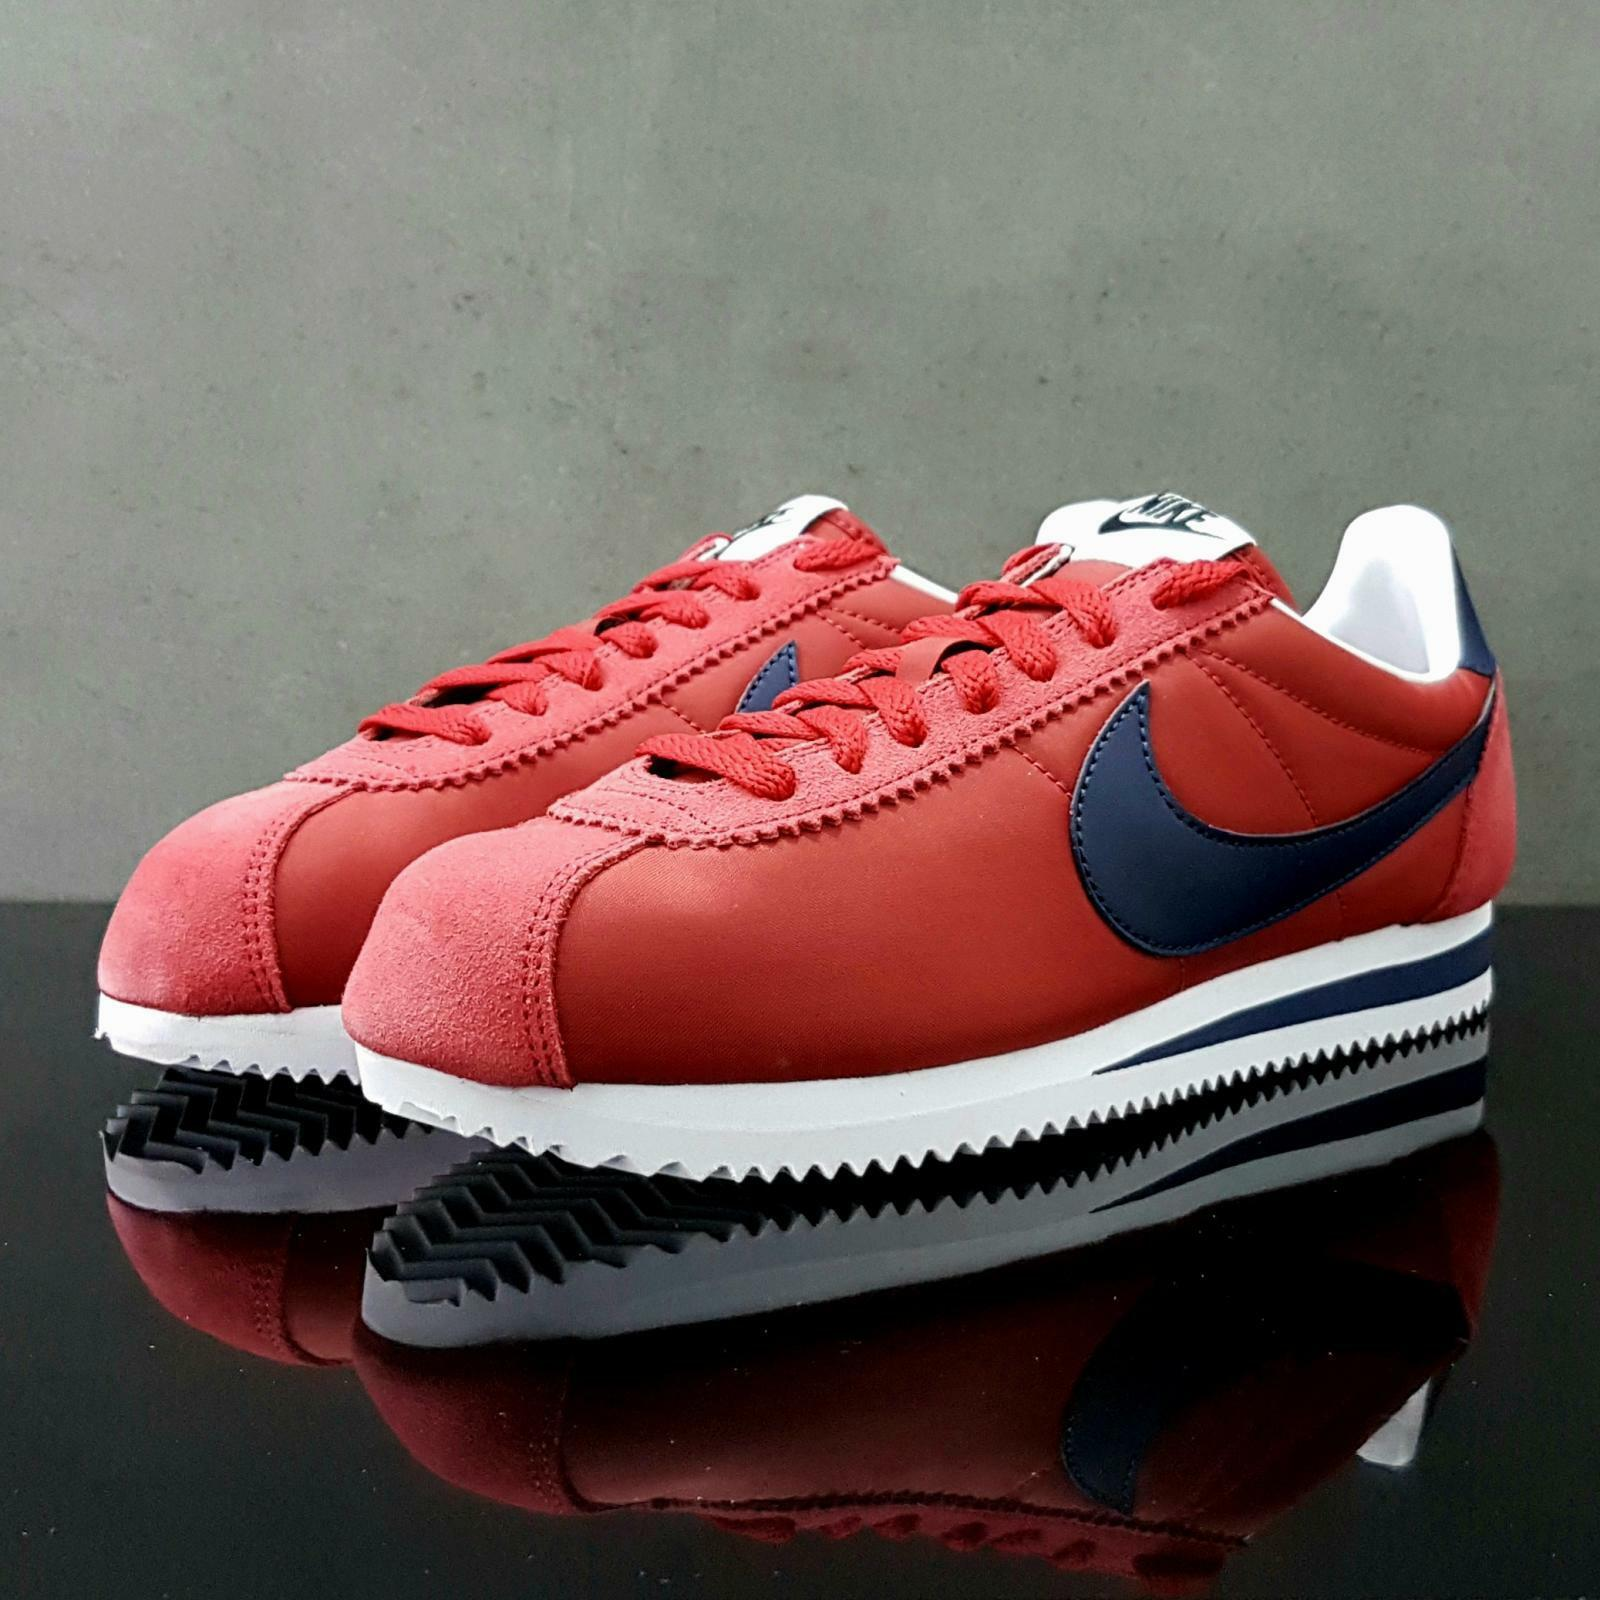 Nike Classic Cortez Nylon rouge/Navy Trainers